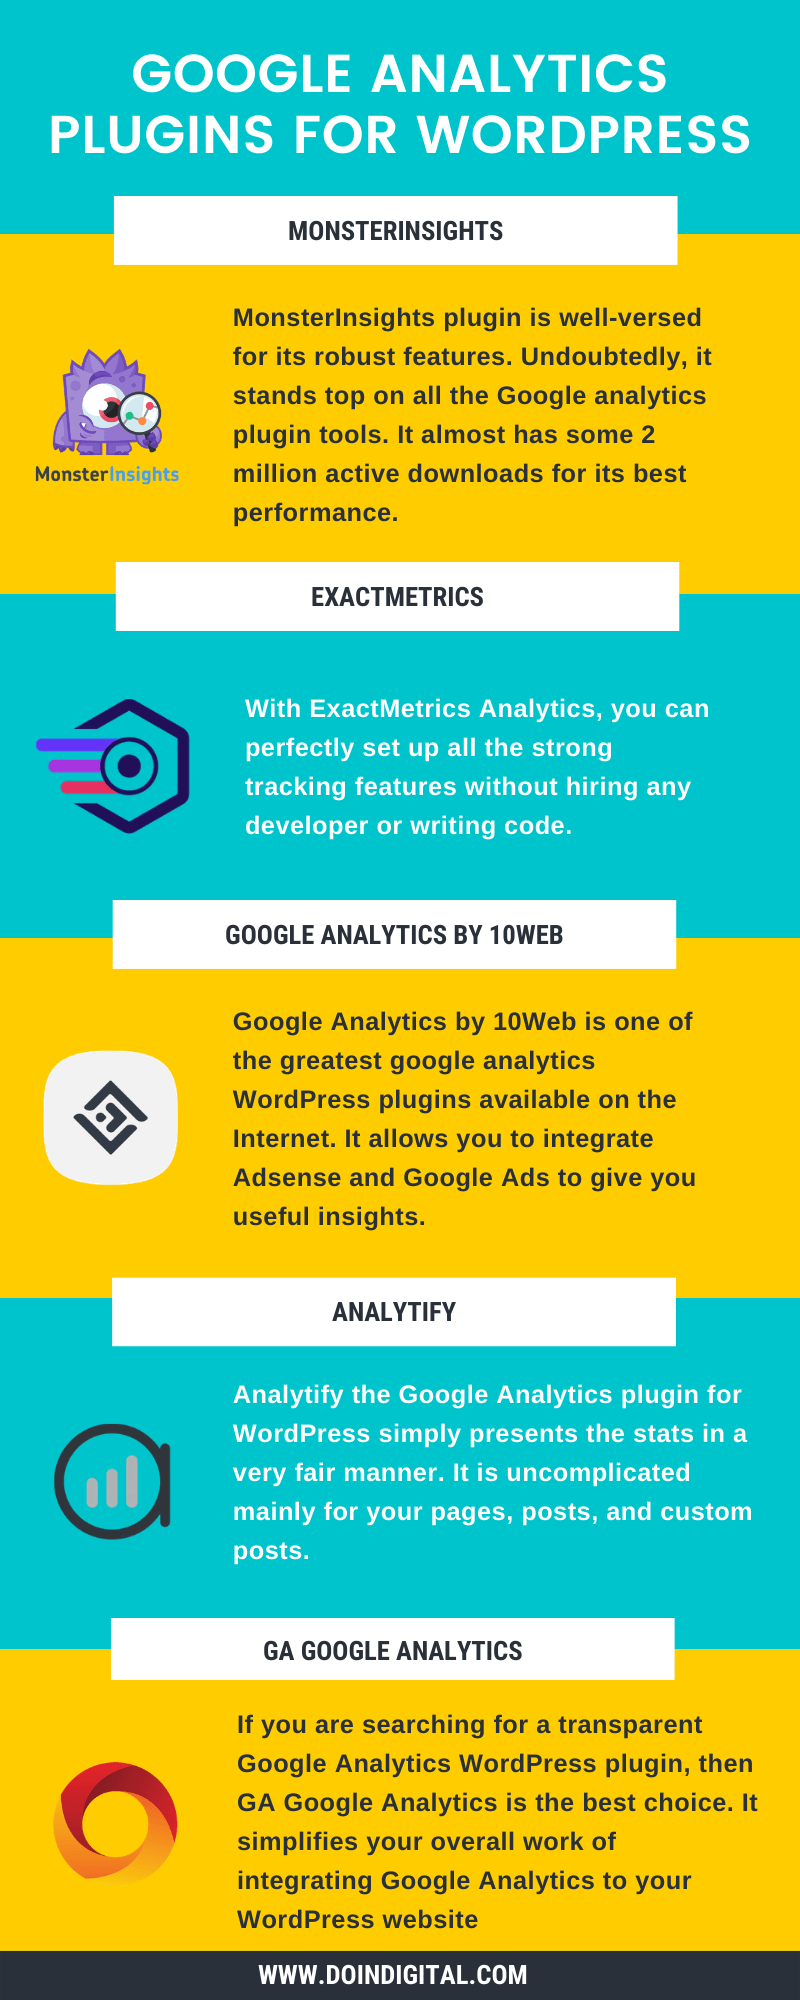 top-google-analytics-wordpress-plugins-infographic